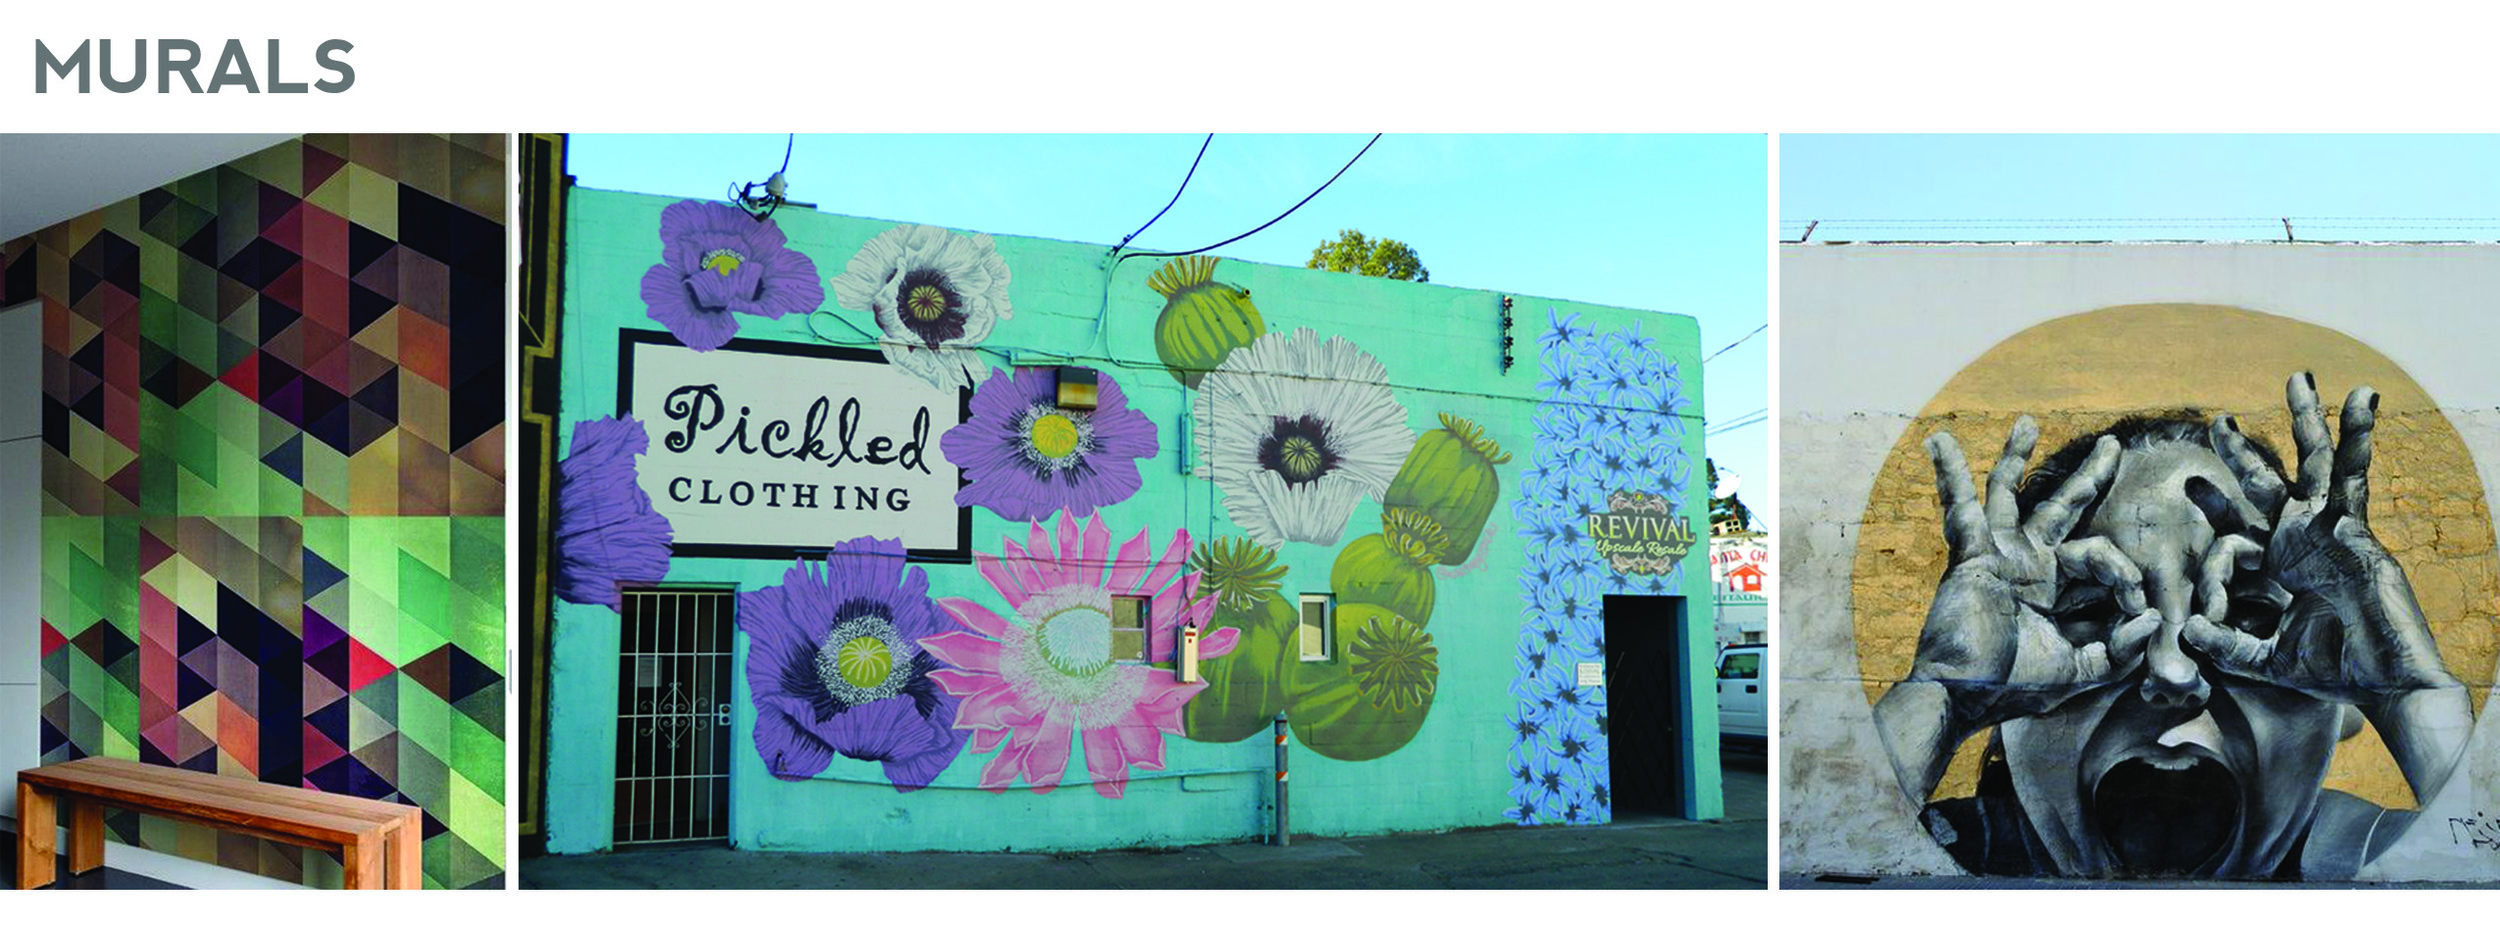 Mural suggestions include patterns, natural elements, or figurative work.